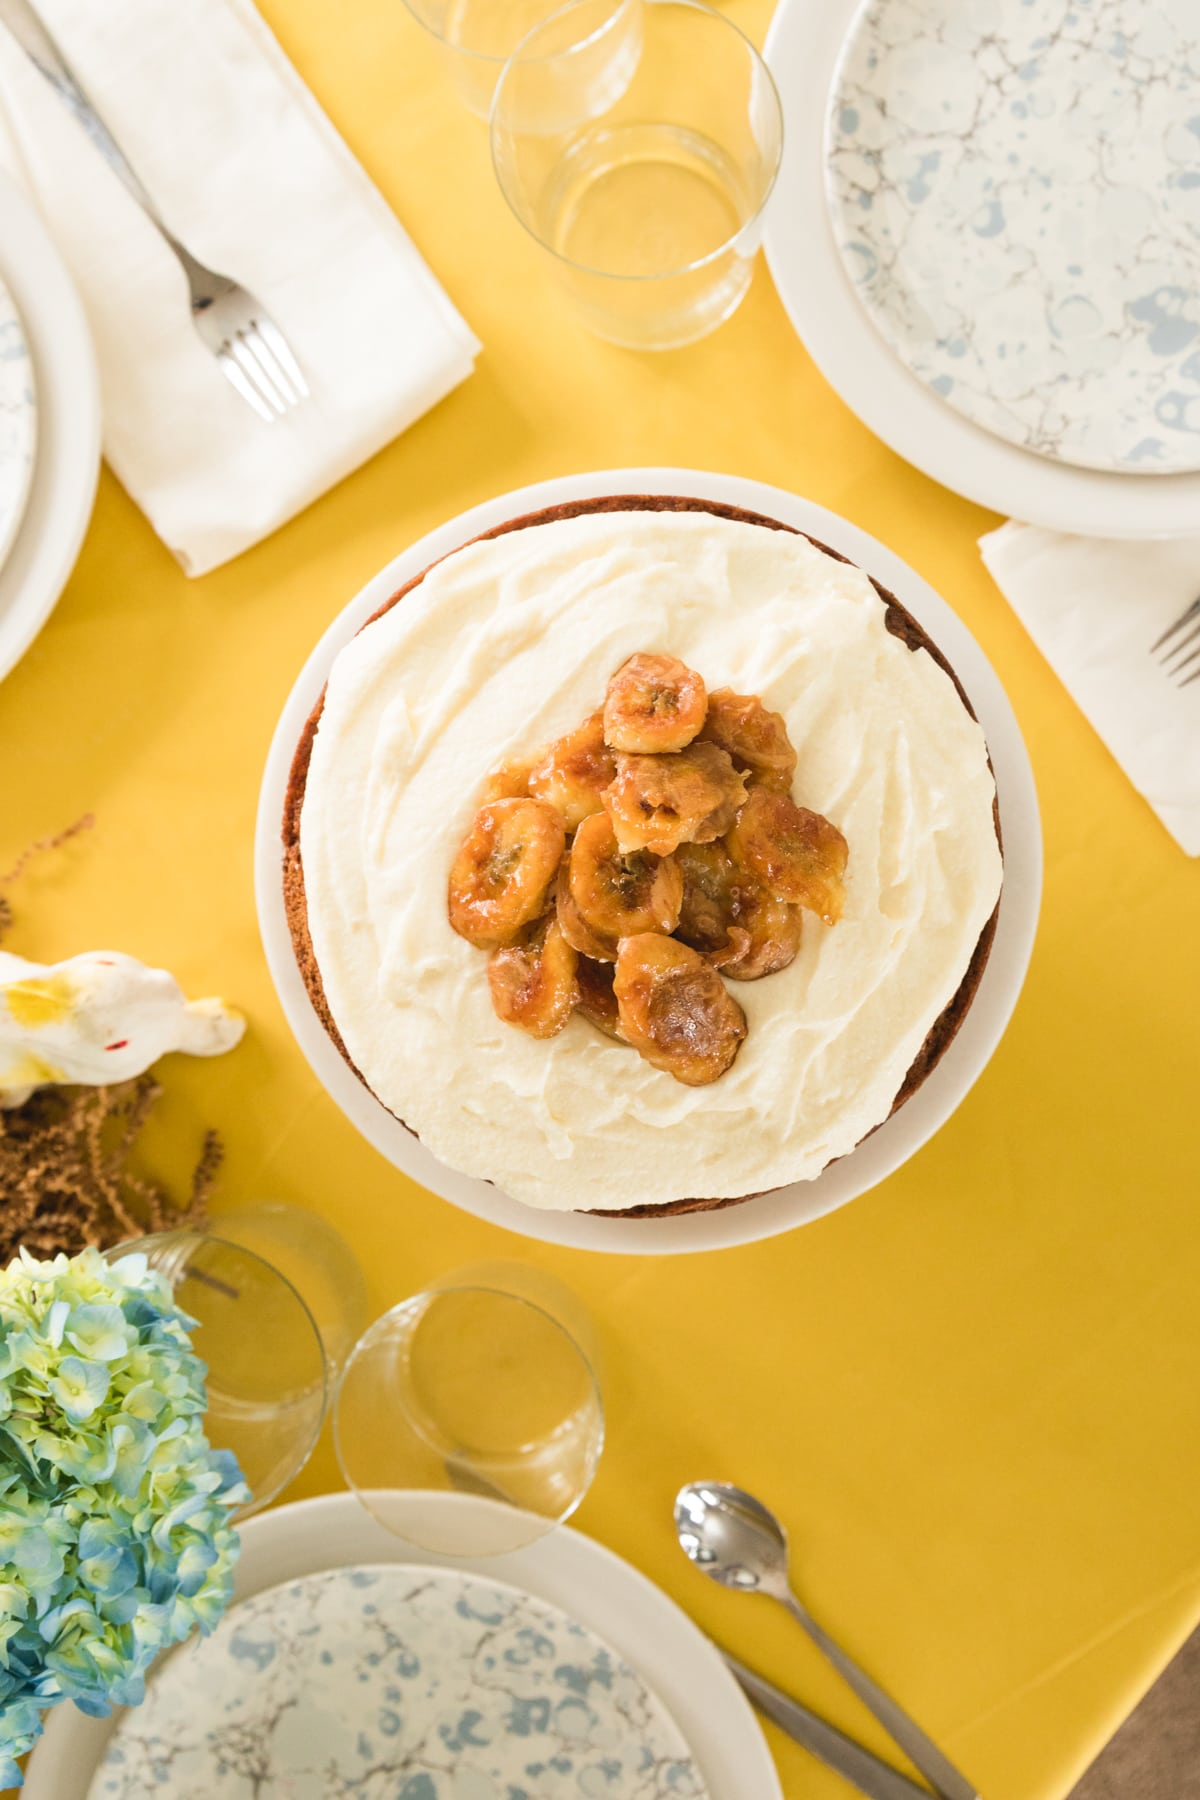 Top down view of cake topped with white frosting and cooked bananas all on yellow tablecloth set with place settings